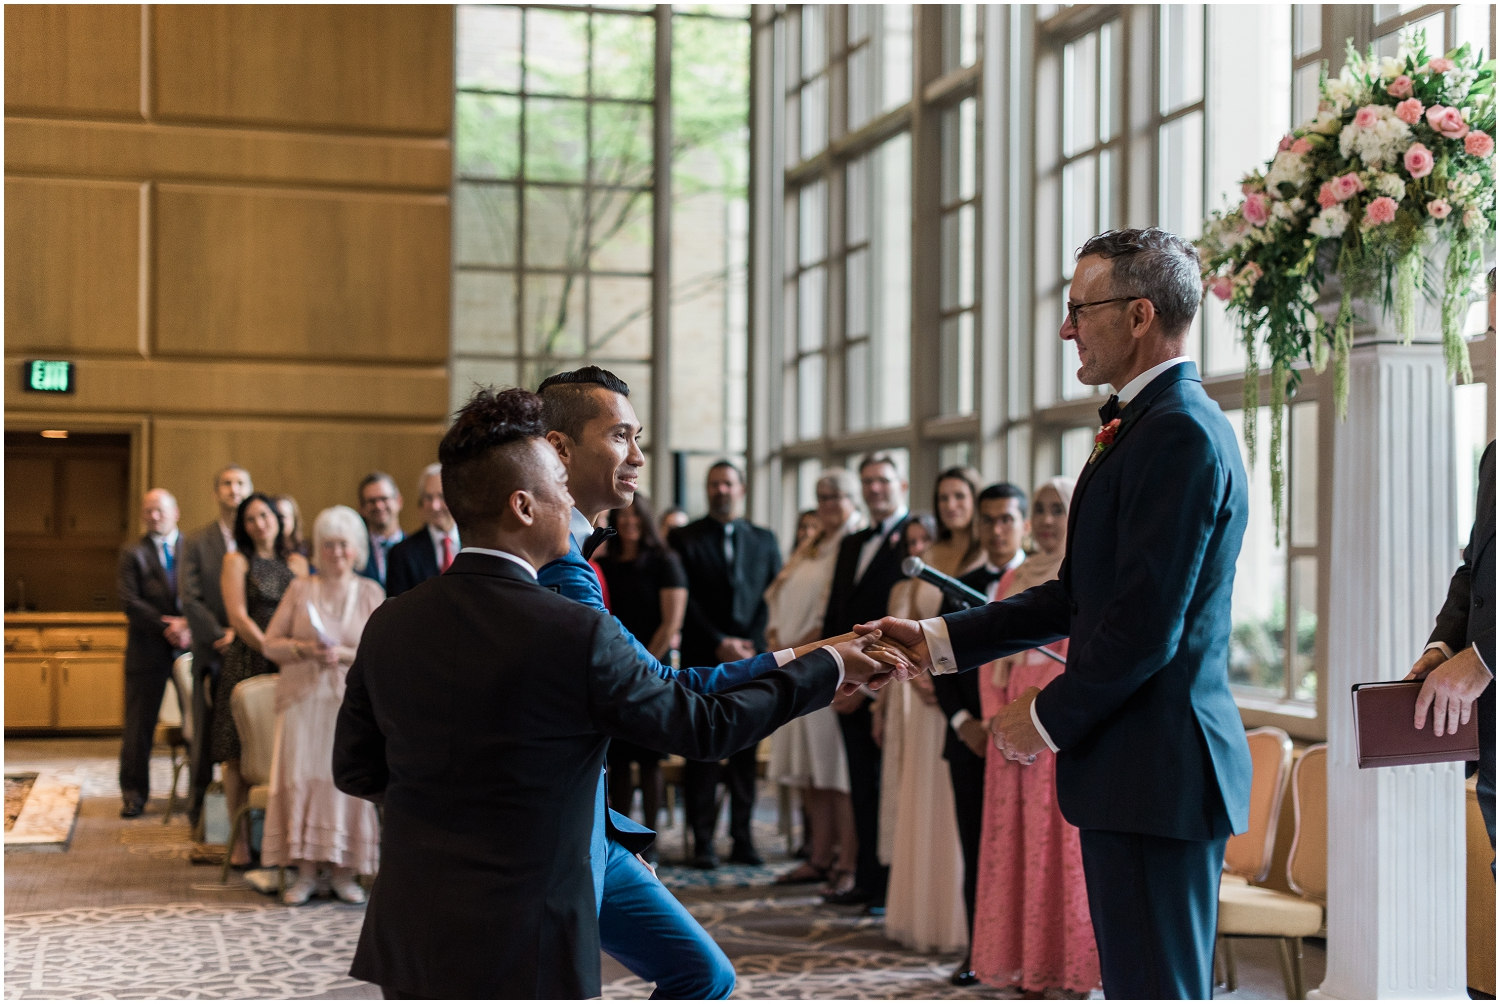 fairmont Hotel, Glamor, Luxury, Gay, LGBTQIA+, King County Wedding Photography, YSL, Ami, Louboutin, Men's fashion, designer, high end, on trend, classic